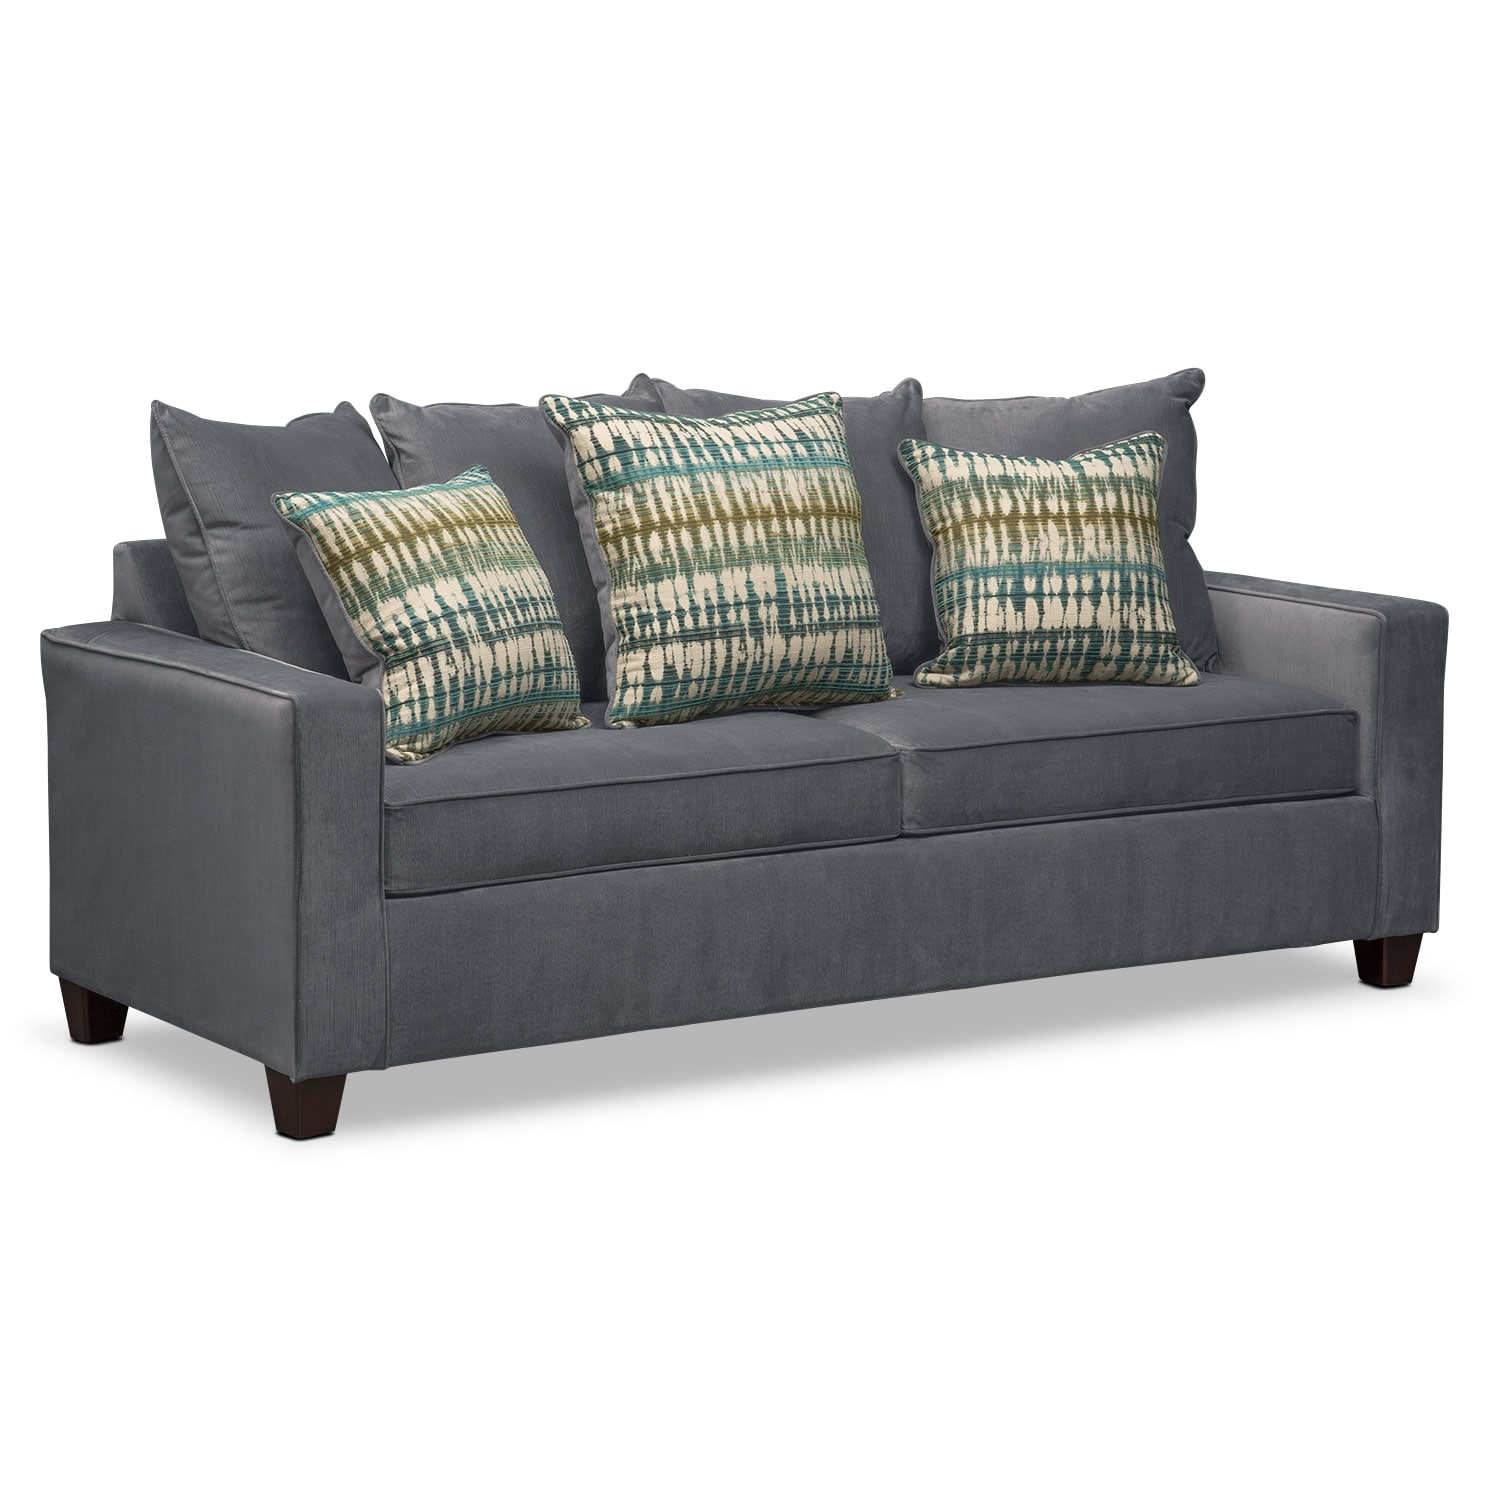 Living Room Furniture - Bryden Queen Memory Foam Sleeper Sofa - Slate